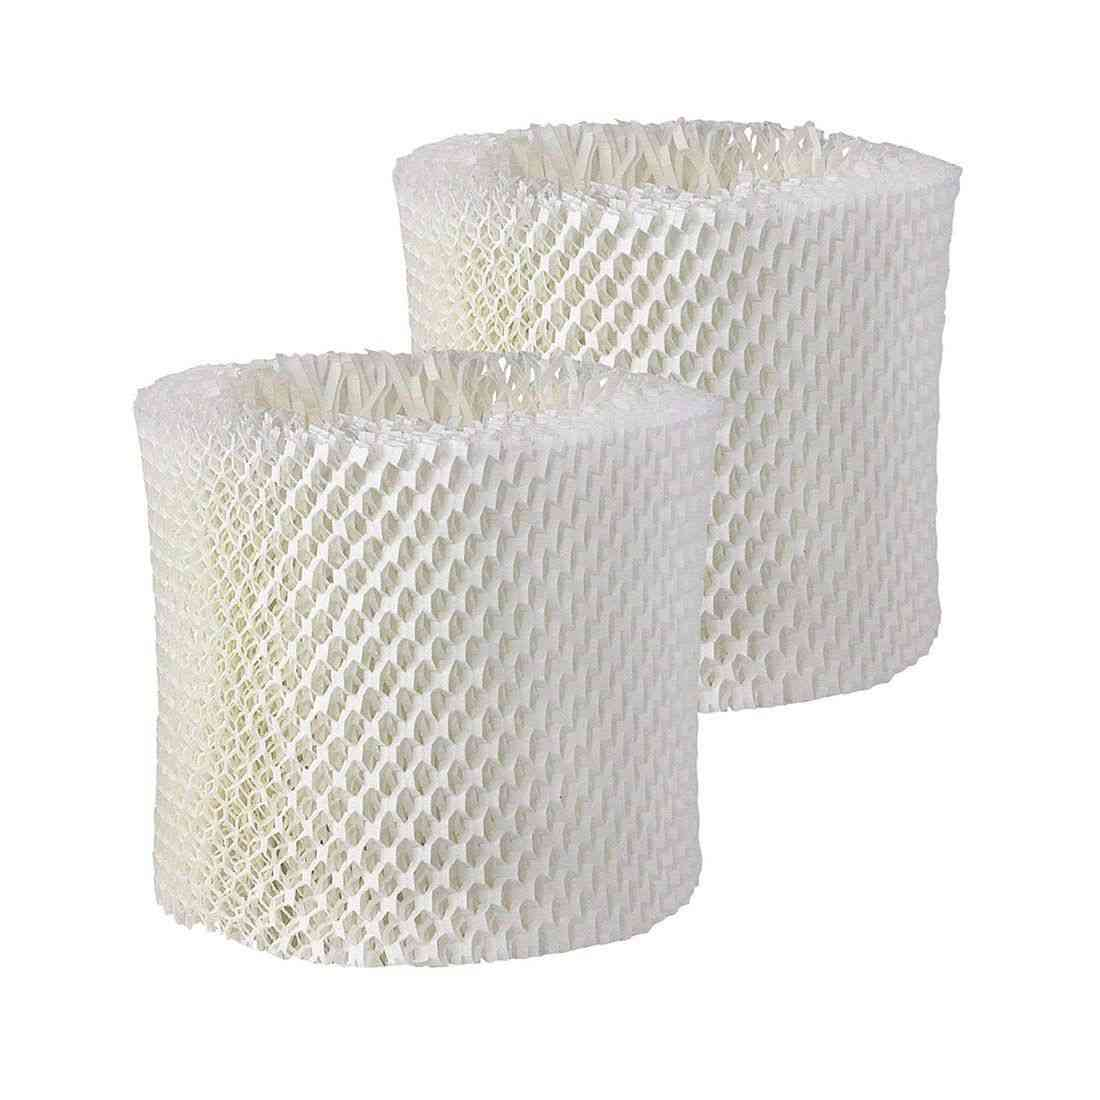 Humidifier Filter For Philips Hu4801 And Hu4803/02/01